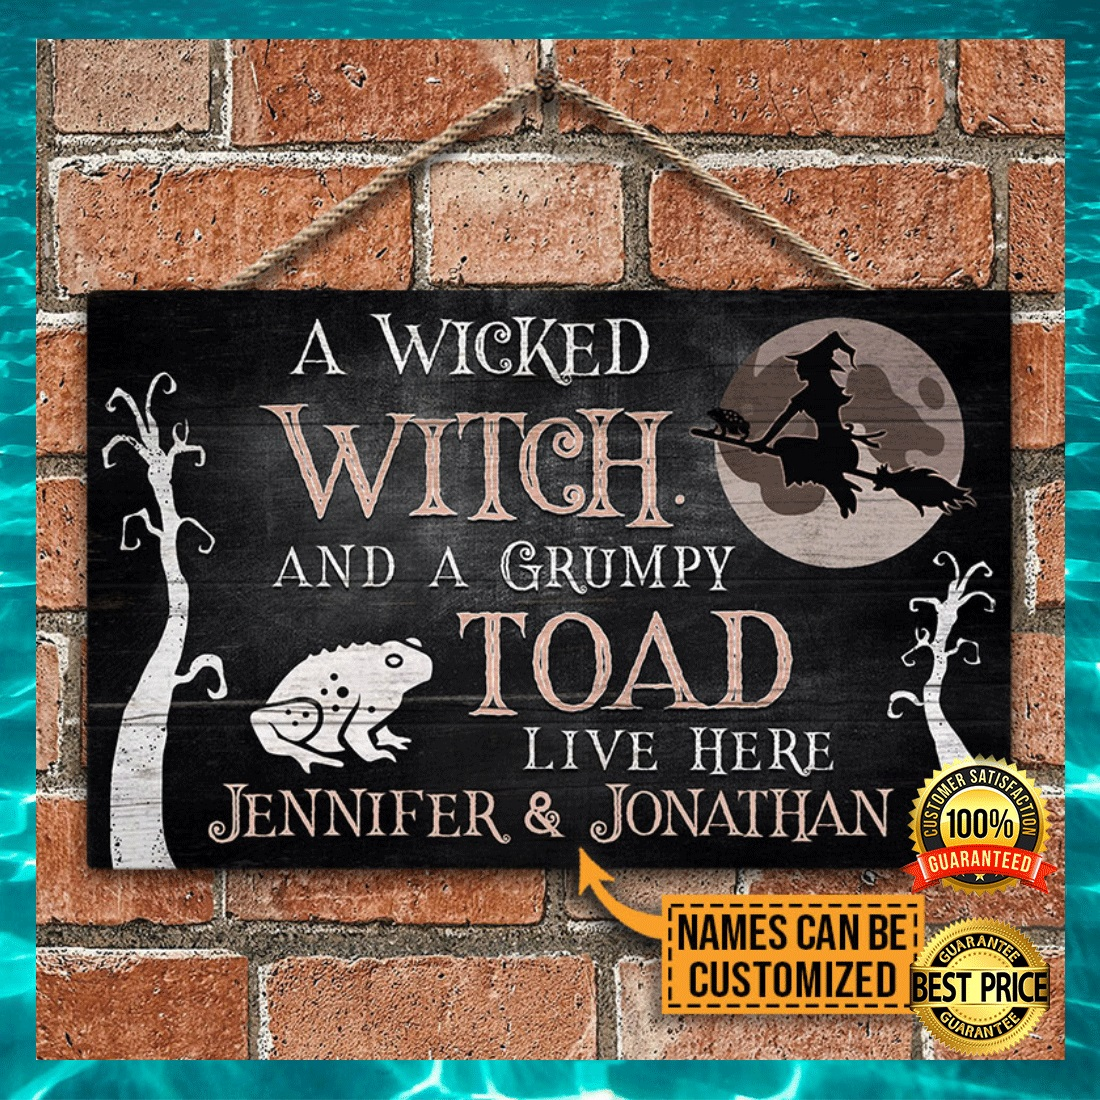 PERSONALIZED A WICKED WITCH AND A GRUMPY TOAD LIVE HERE DOOR SIGN 4